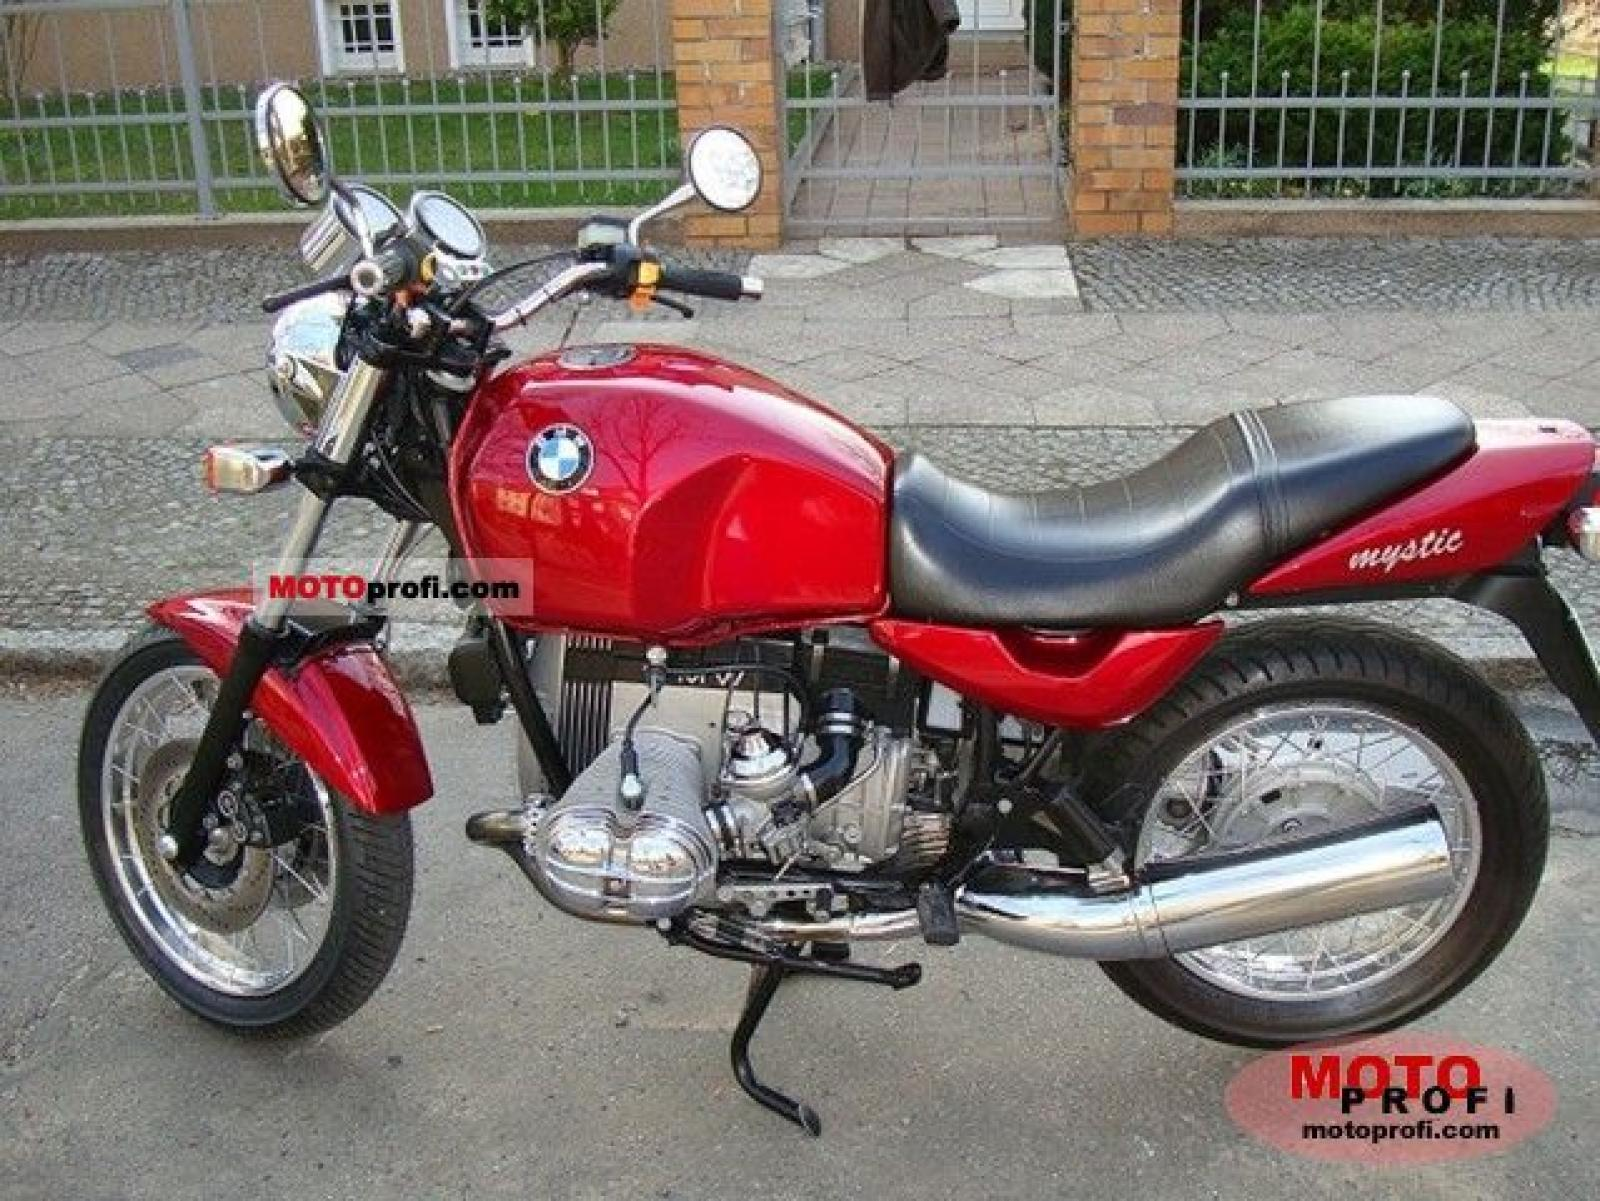 BMW R45 (reduced effect) 1985 images #77171